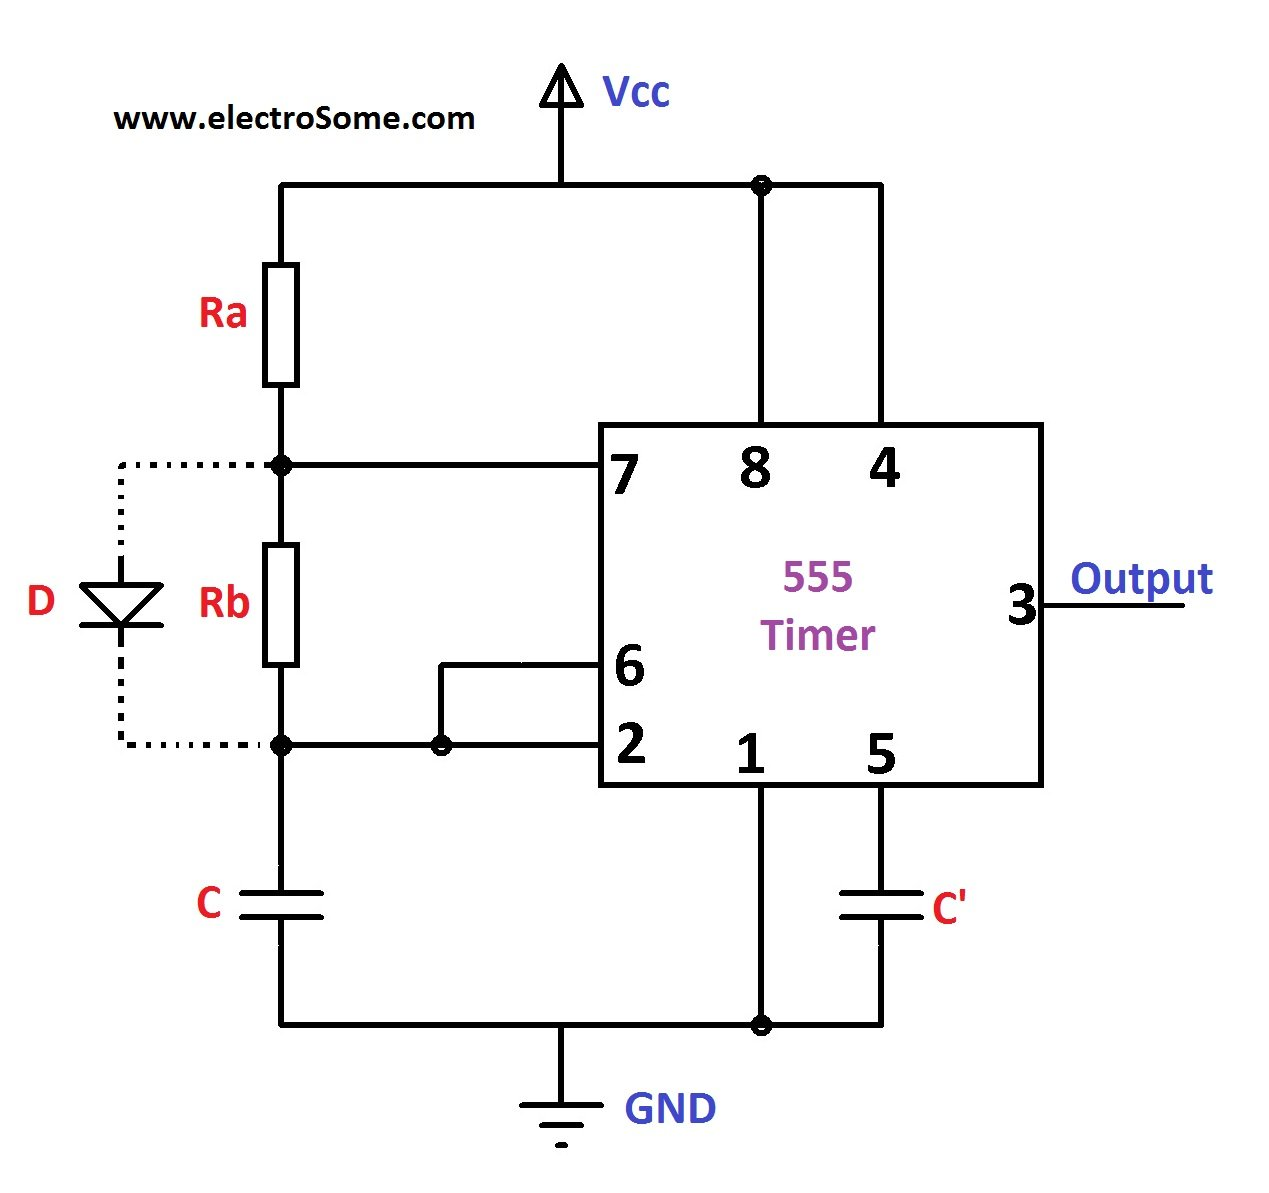 astable multivibrator using 555 timer rh electrosome com 555 Timer Diagram 555 Timer Block Diagram